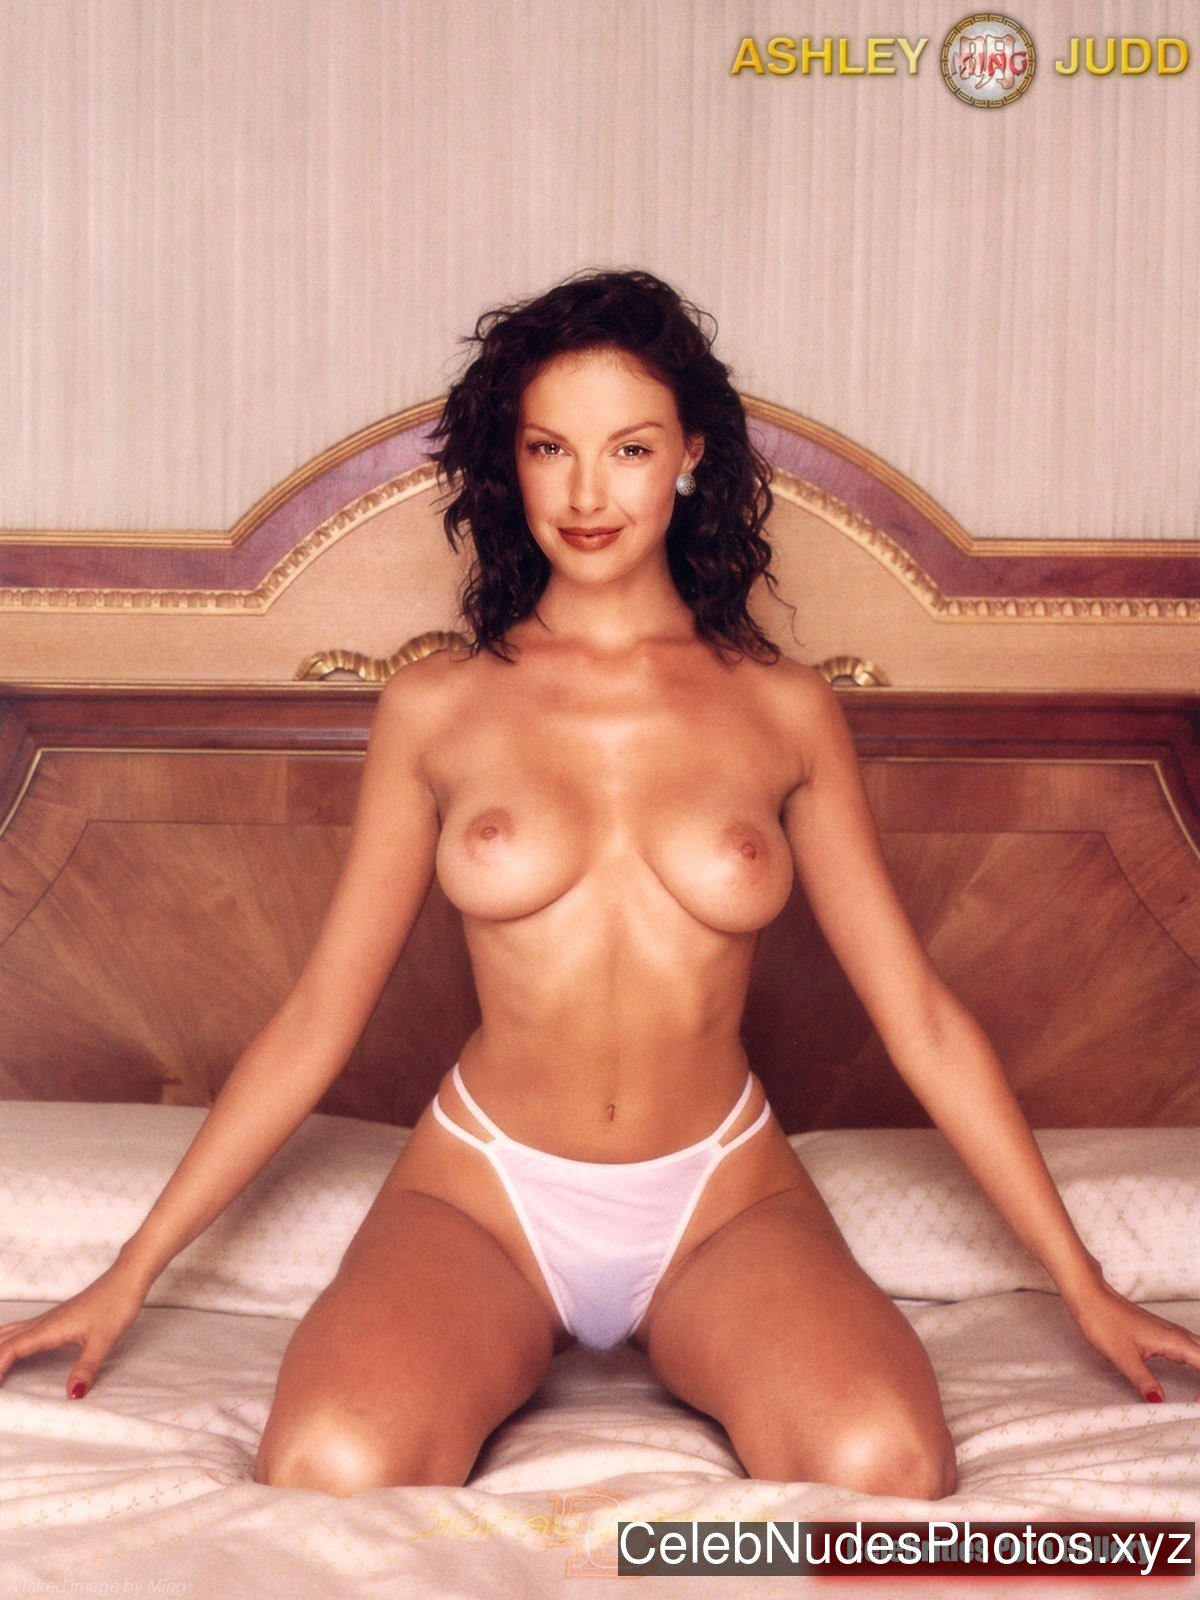 ashley judd breasts